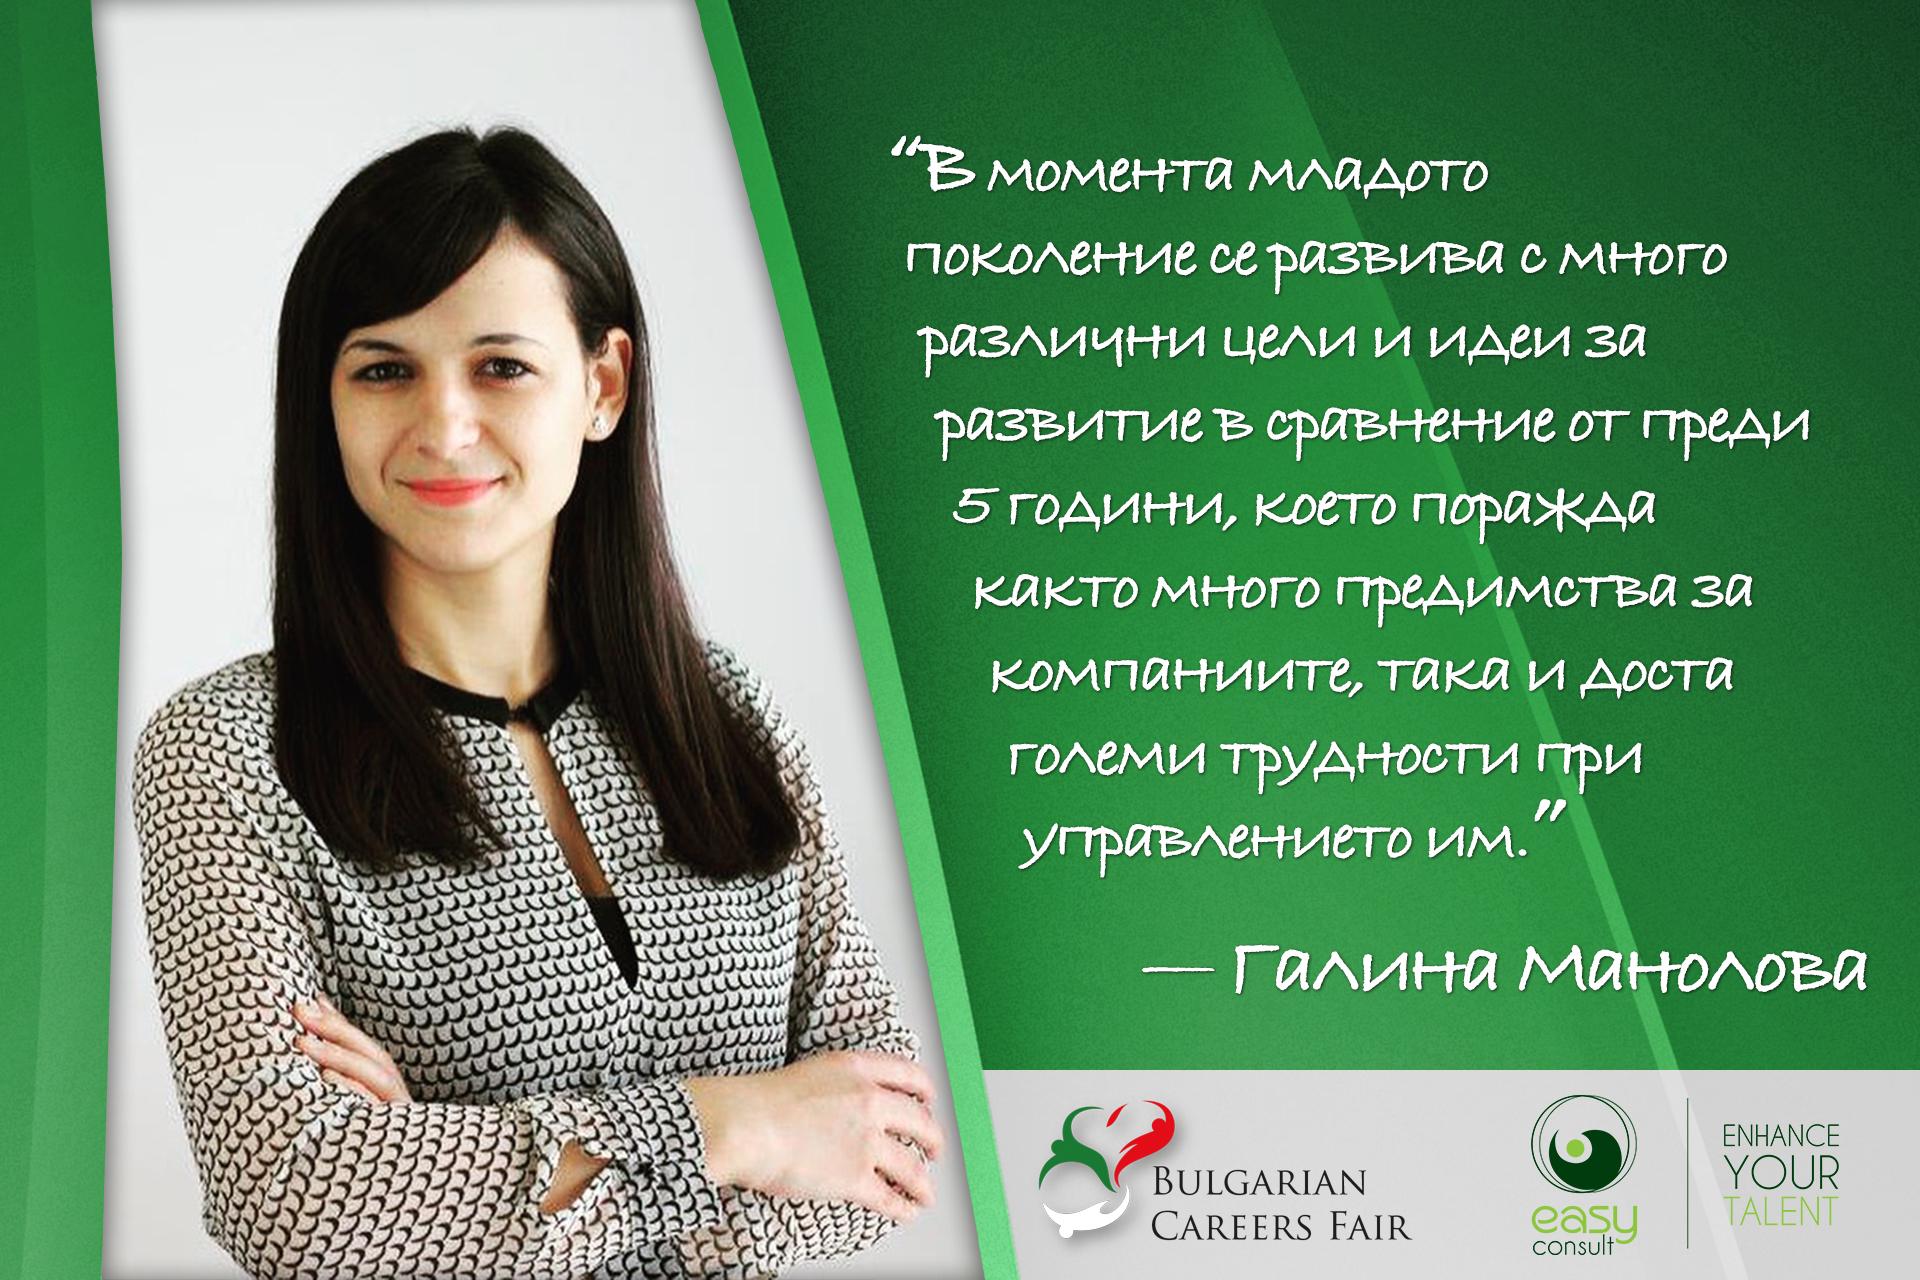 Galina-Manolova_quote